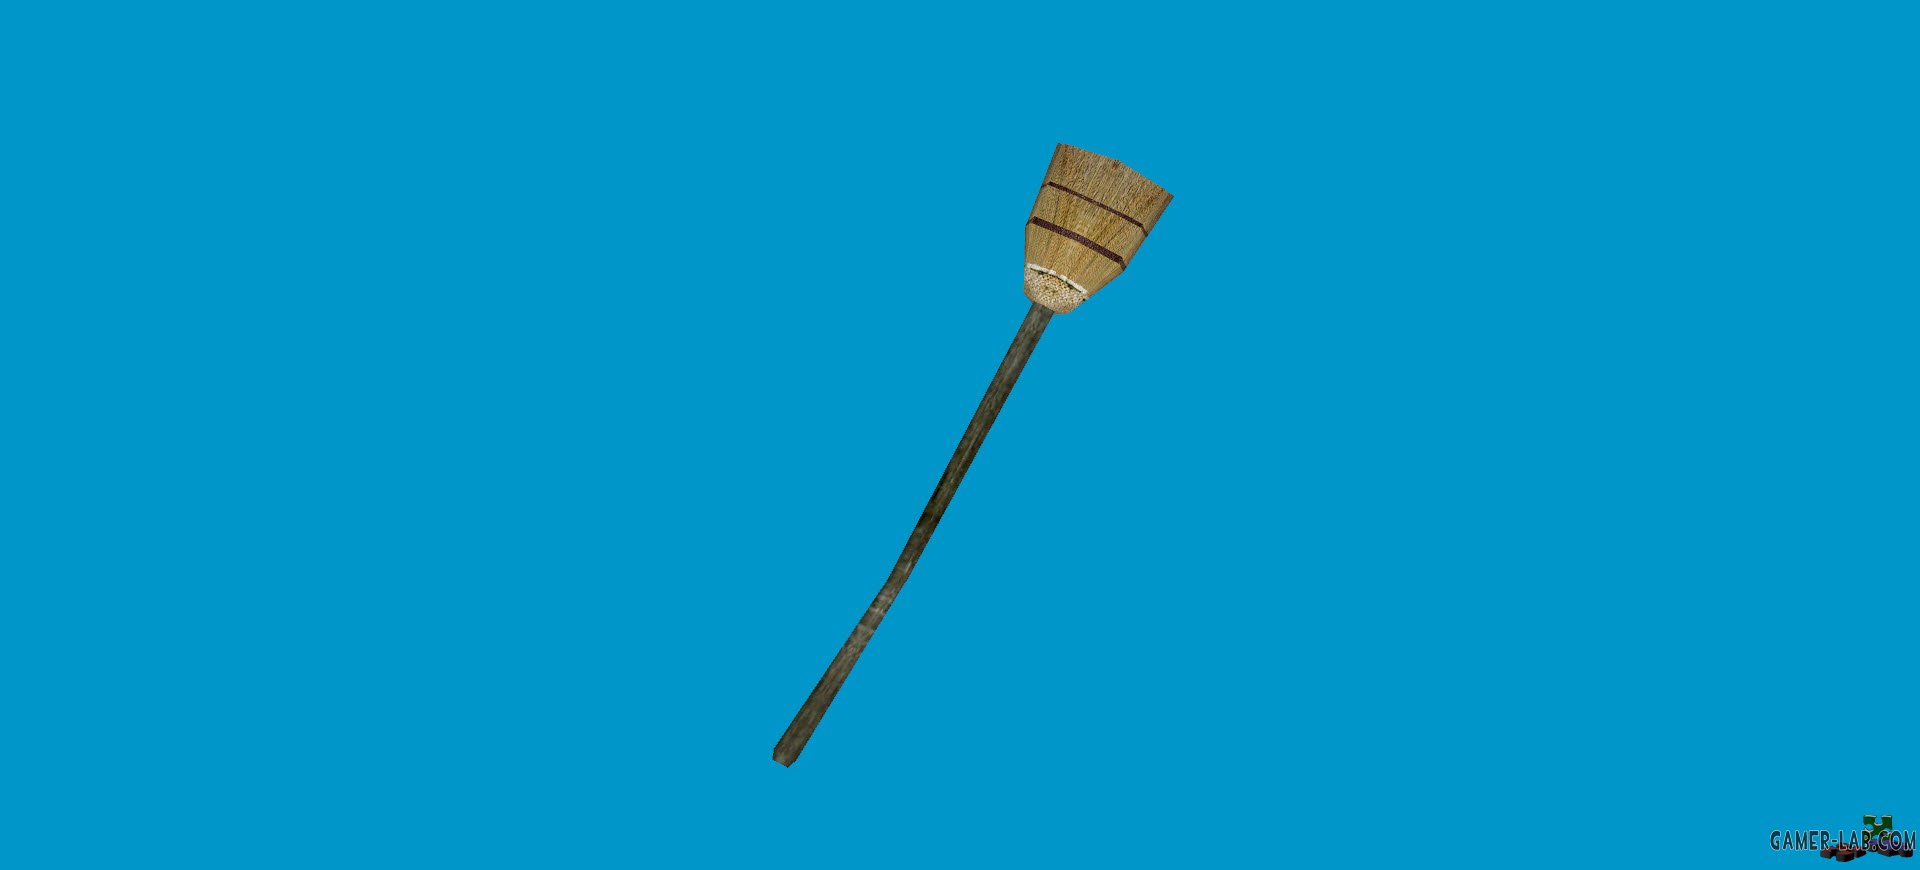 bt broom